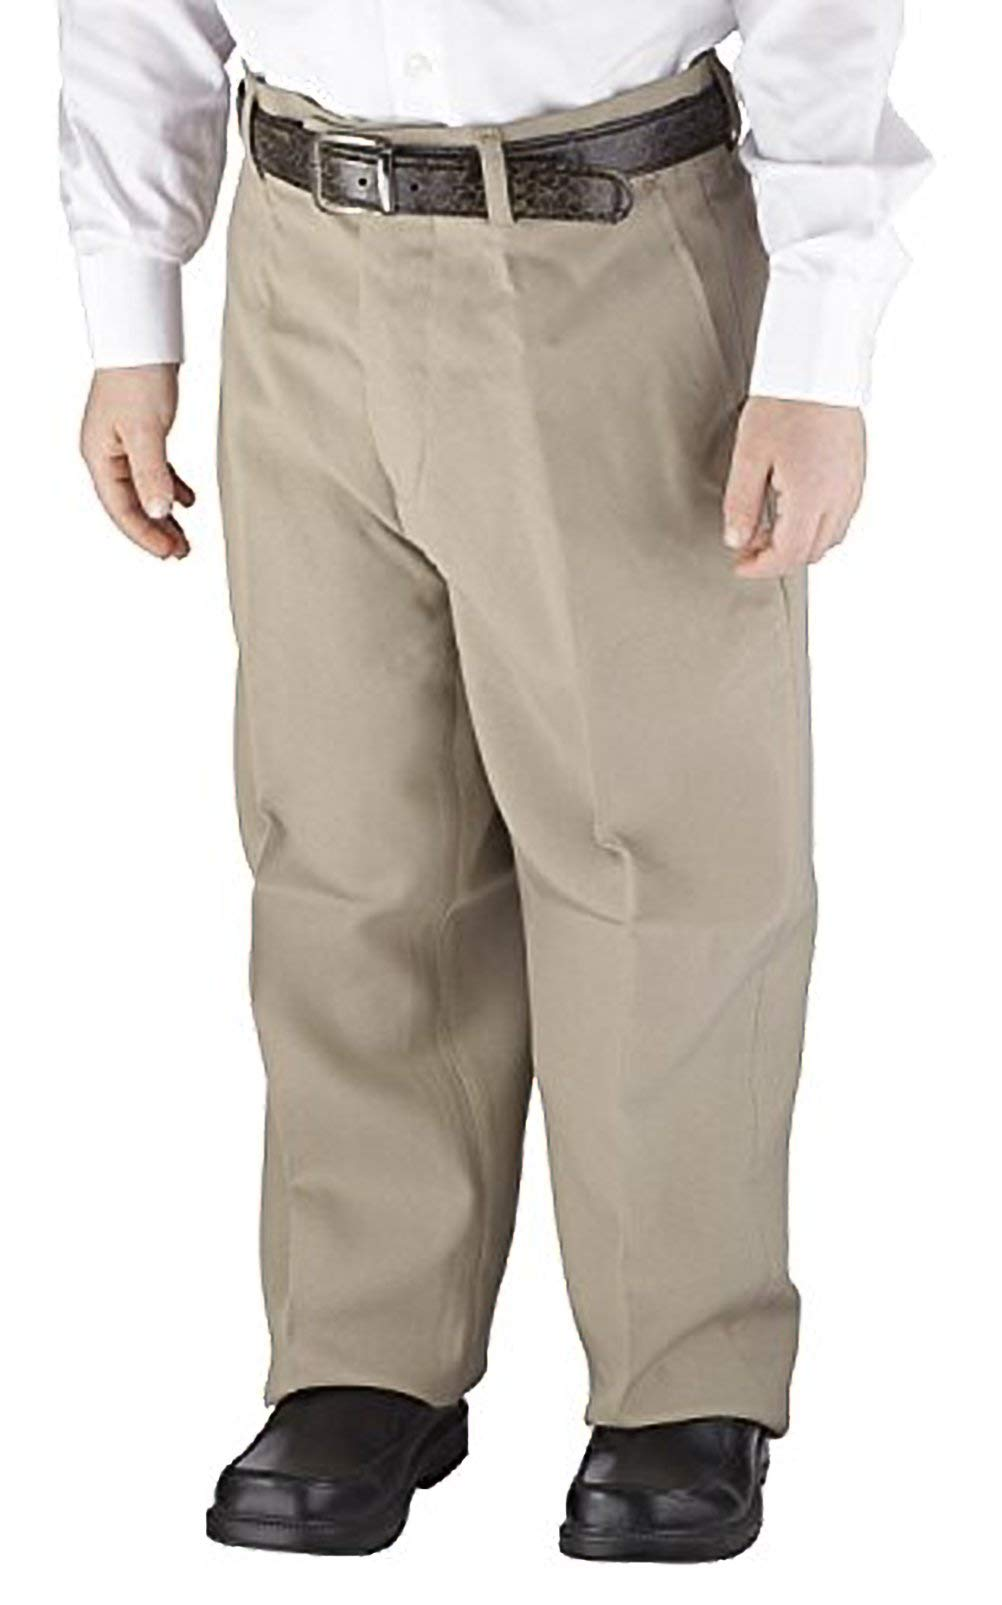 Victorio Cuture Solid Belted Flat Front Slim Fit Boys Dress Pants (Beige, 16)